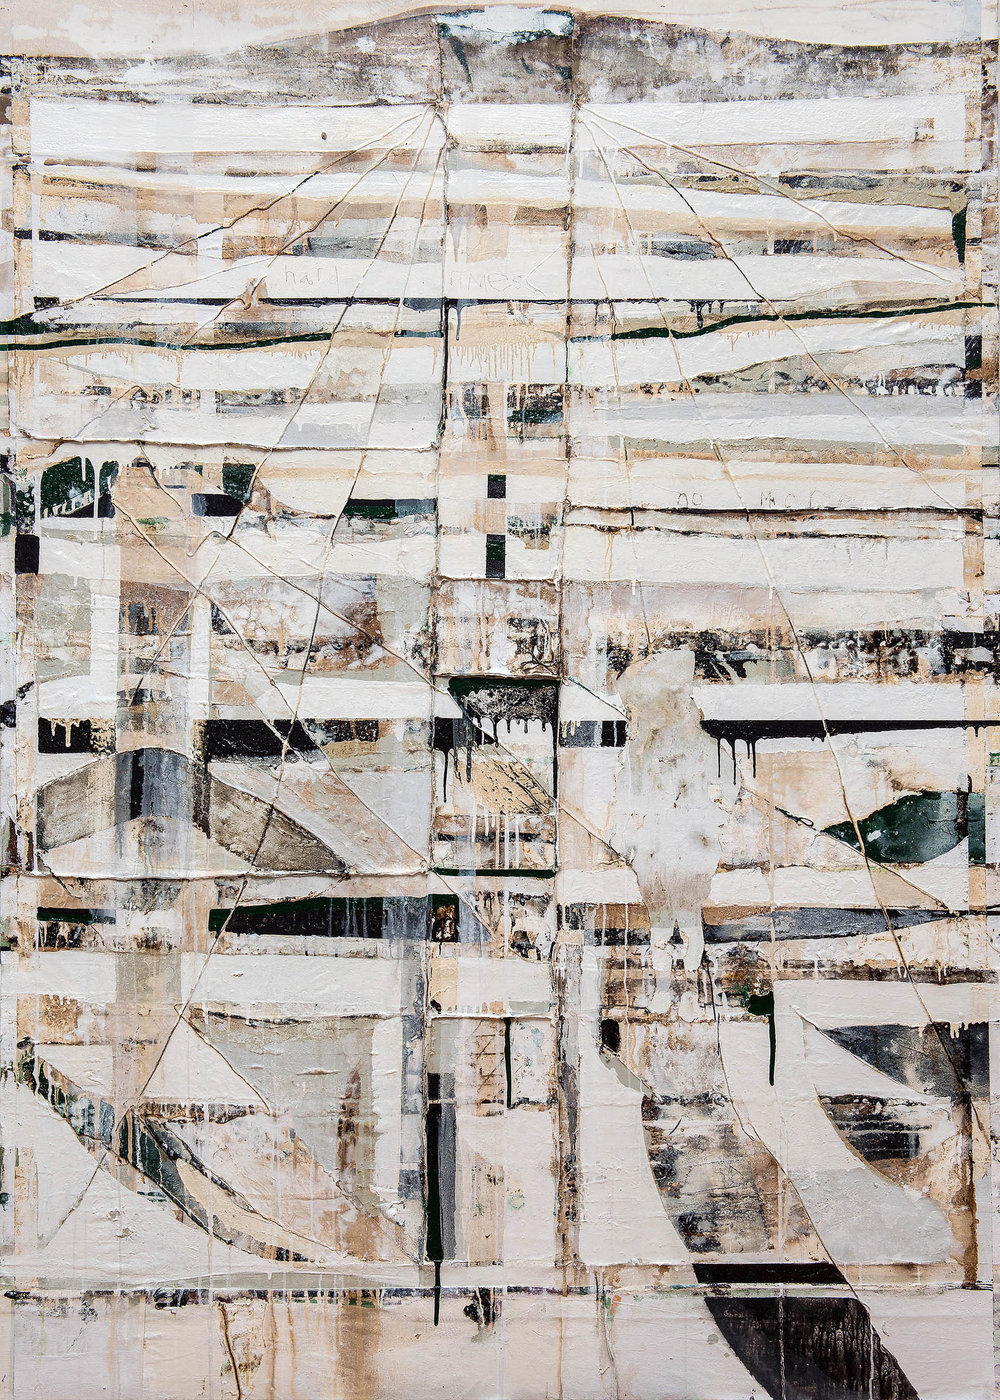 Lucie des Isles, 2014, 60 x 84 inches, Mixed media